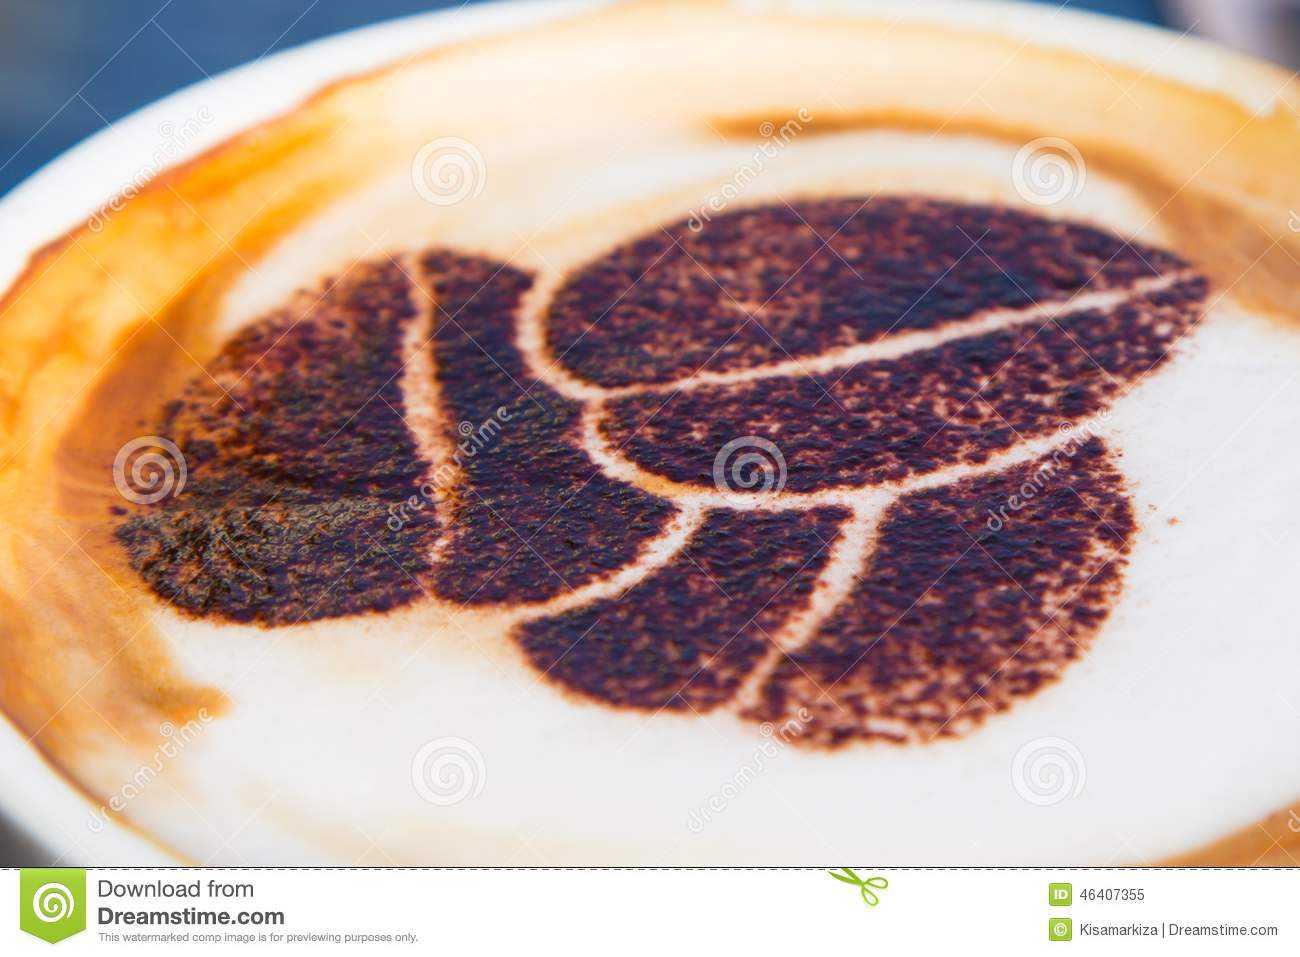 Cappuccino with a coffee bean drawing stock image image for How to draw a coffee bean